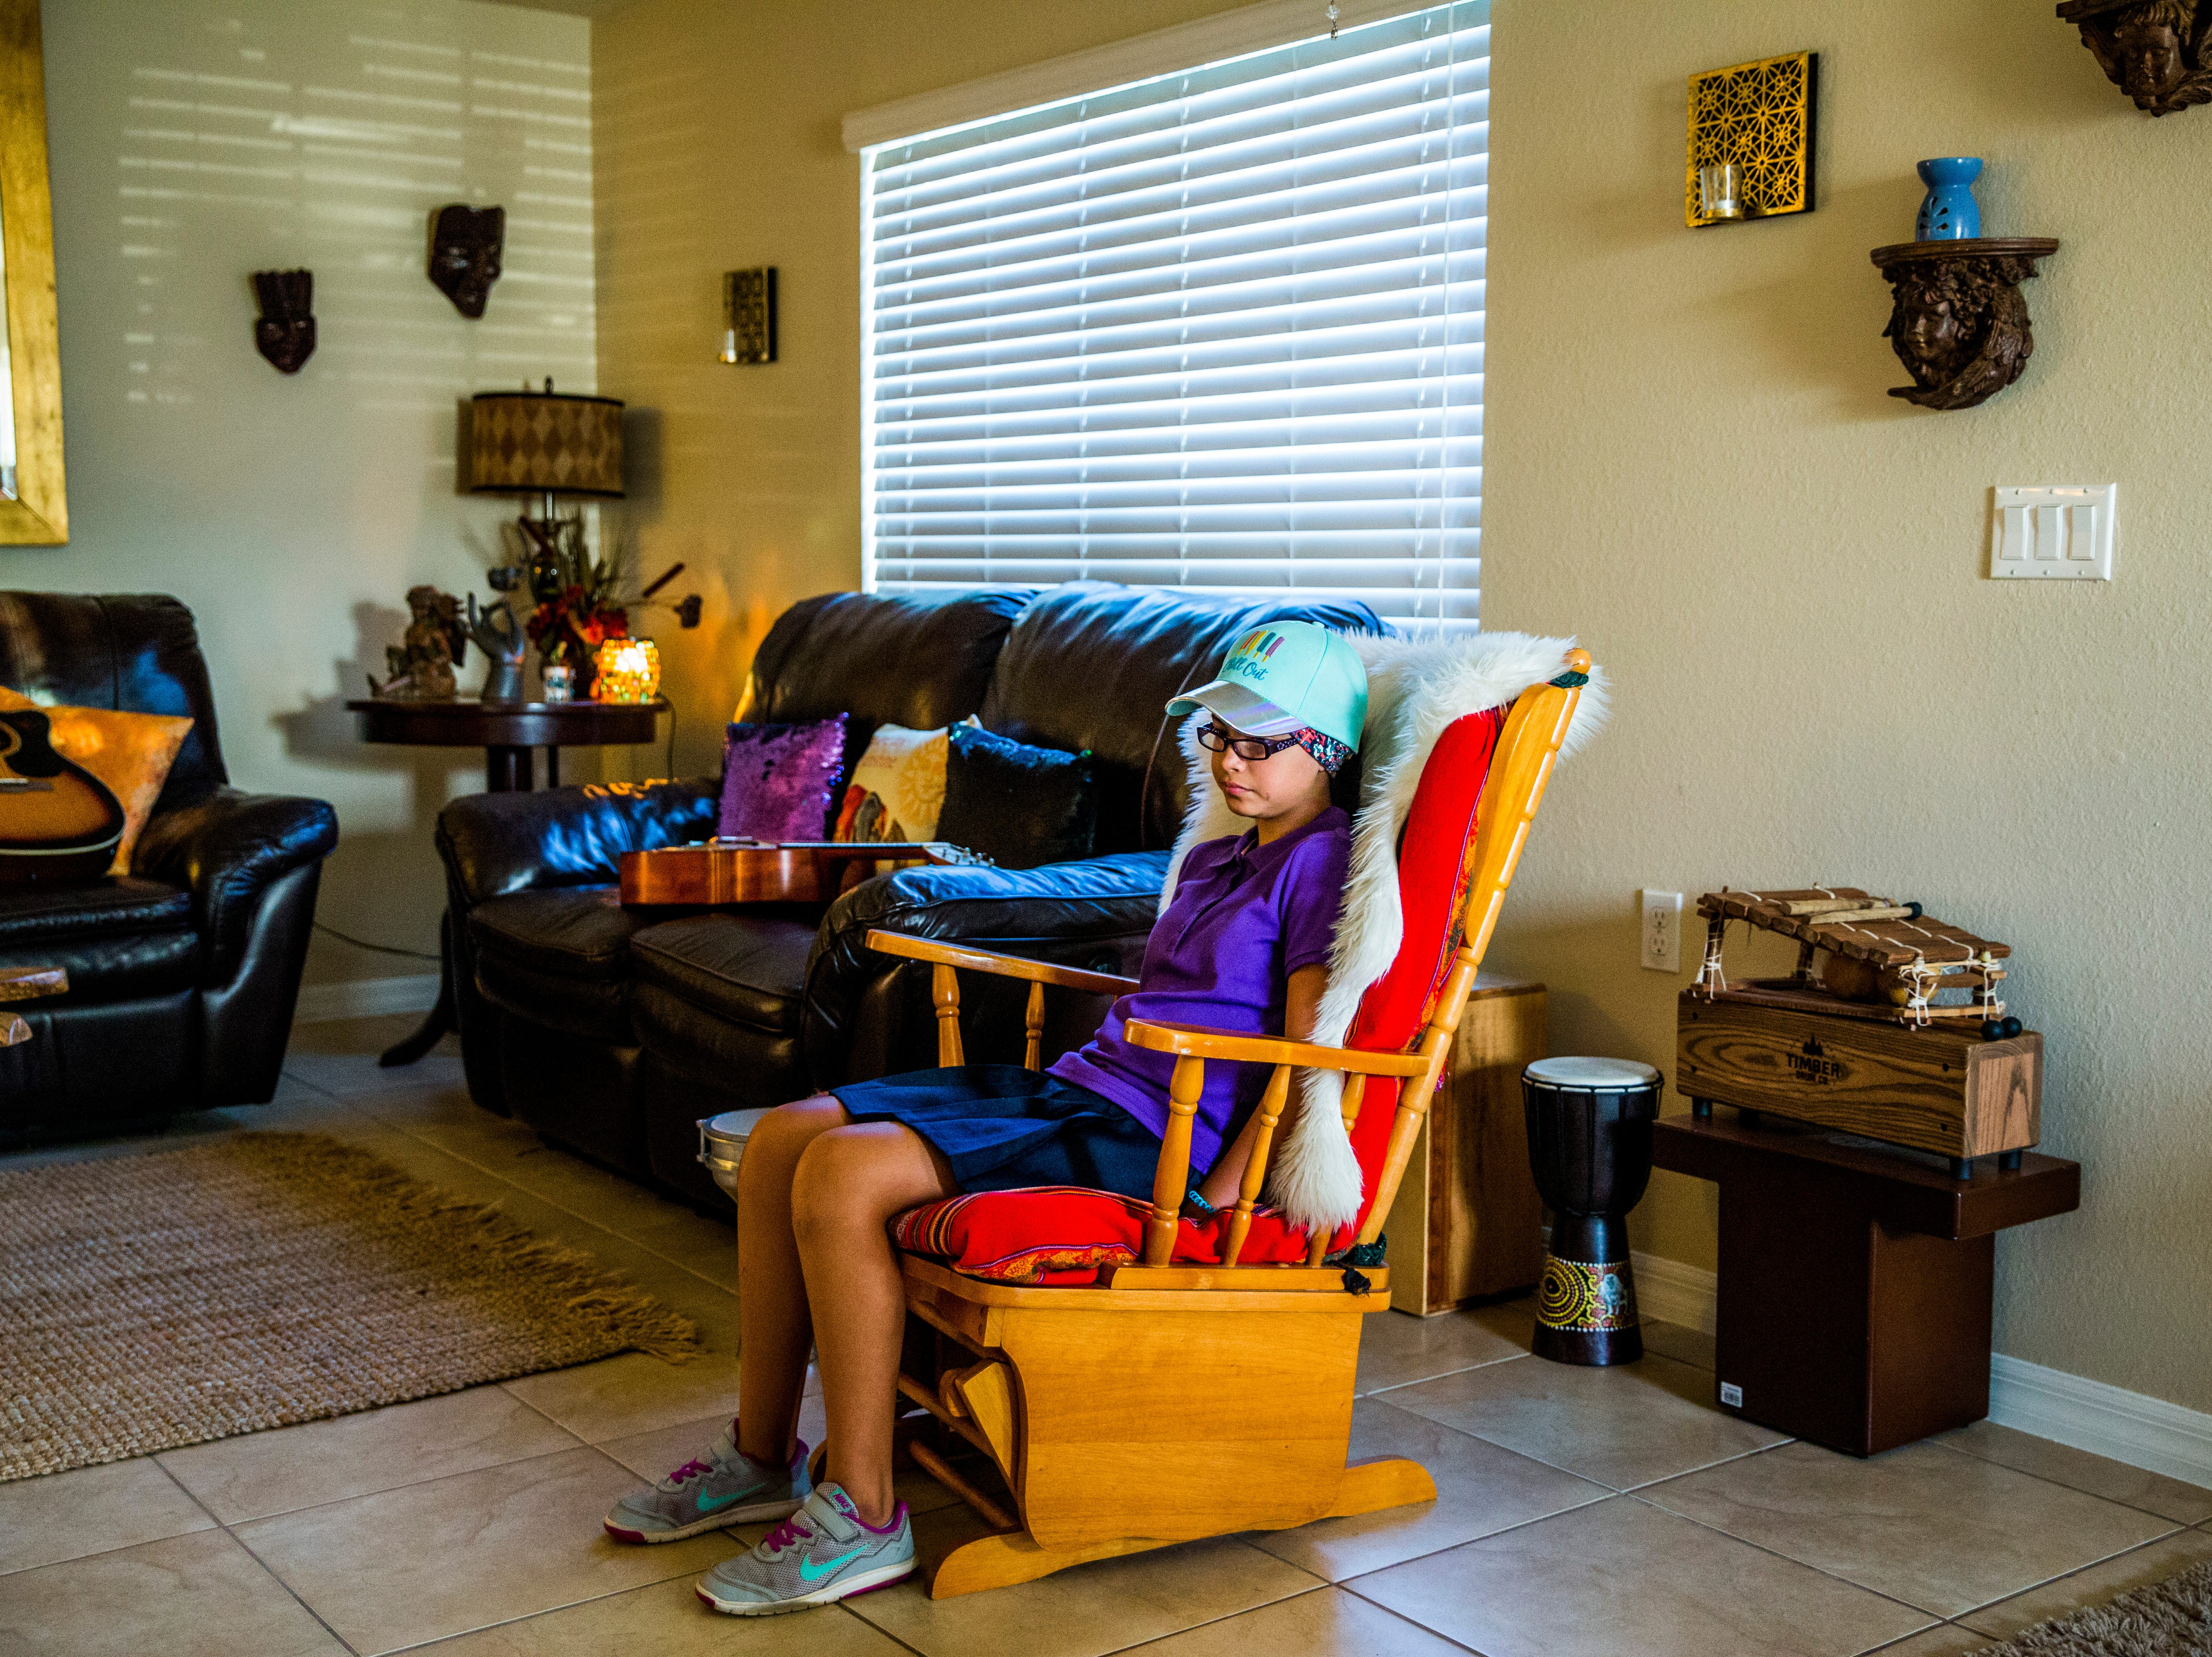 Camila Chang, 11, waits to leave for school in the morning in her North Naples home on Thursday, Aug. 16, 2018.